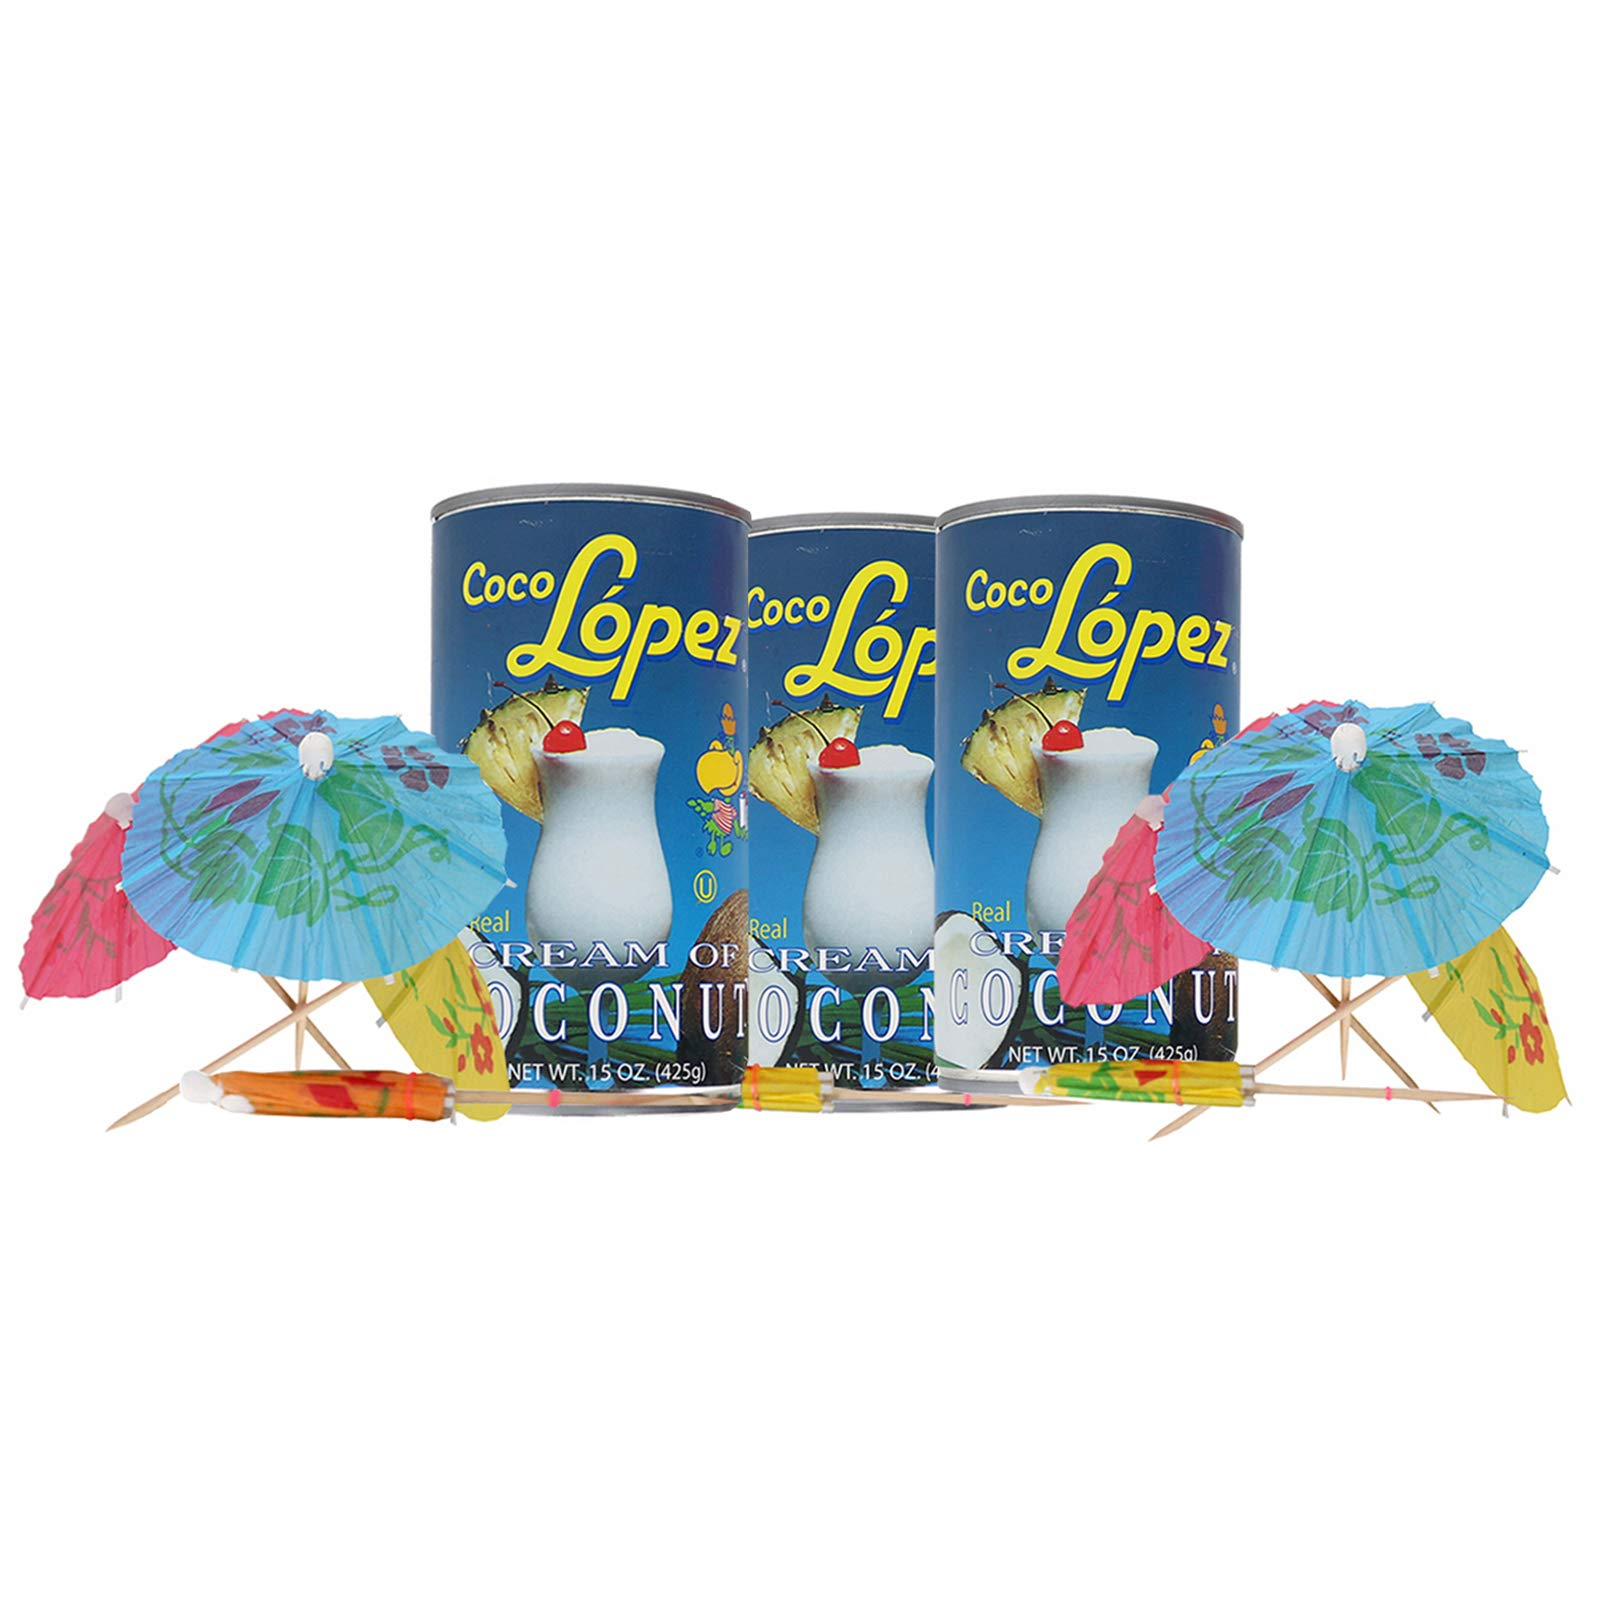 Coco Lopez - Real Cream of Coconut - 15 Ounce Can - Original Fresh Authentic Coconut Cream (Pack Of 3) by Coco Lopez (Image #5)